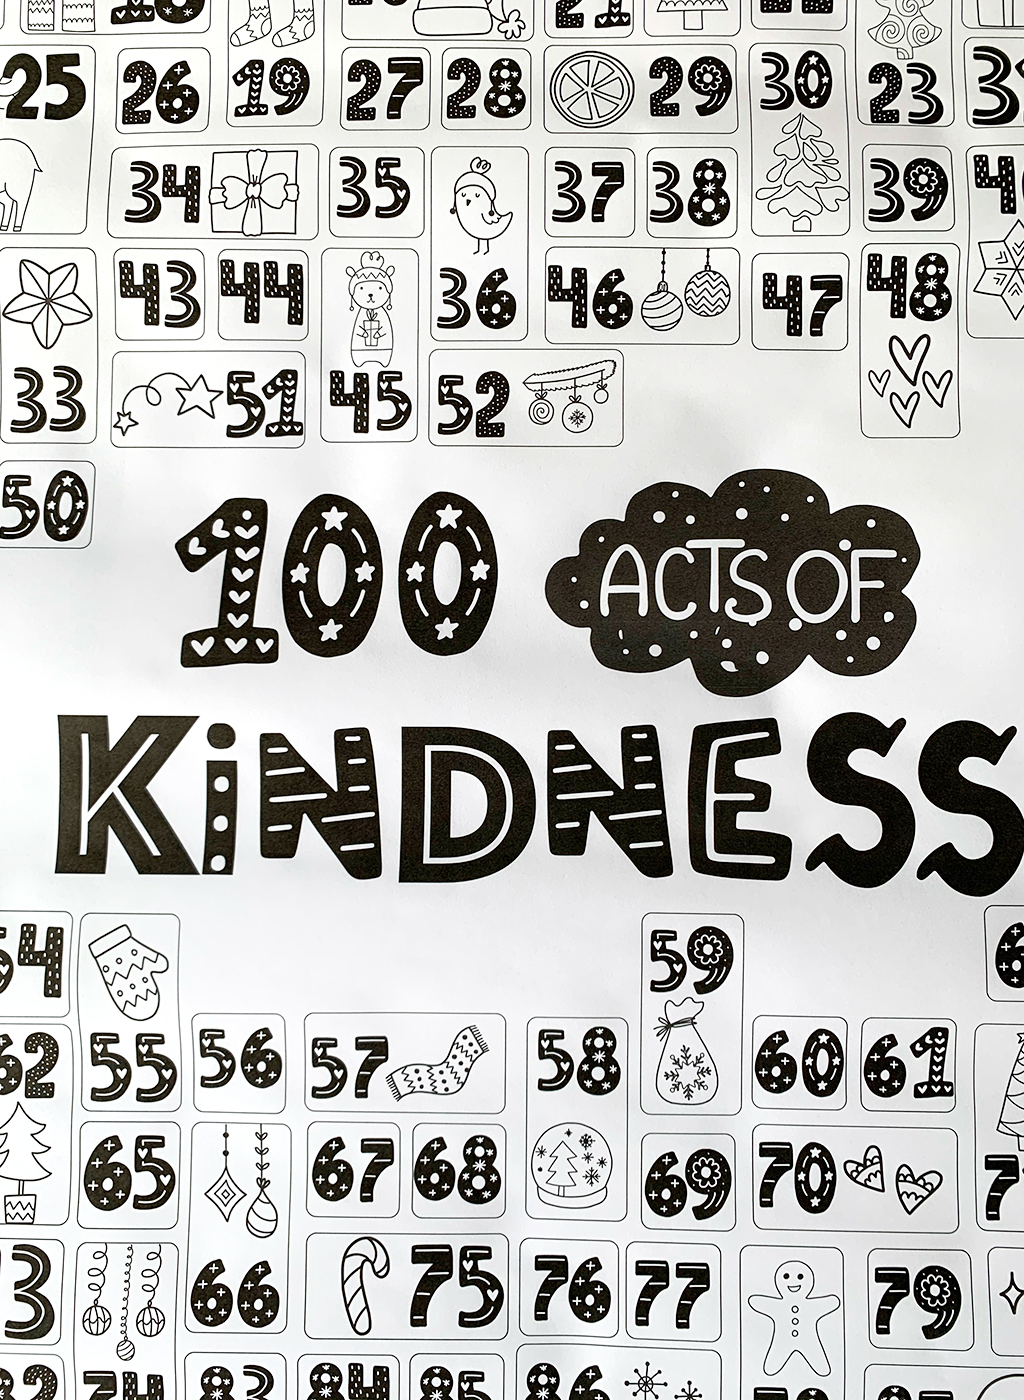 Black and white copy of 100 Acts of kindness countdown coloring page